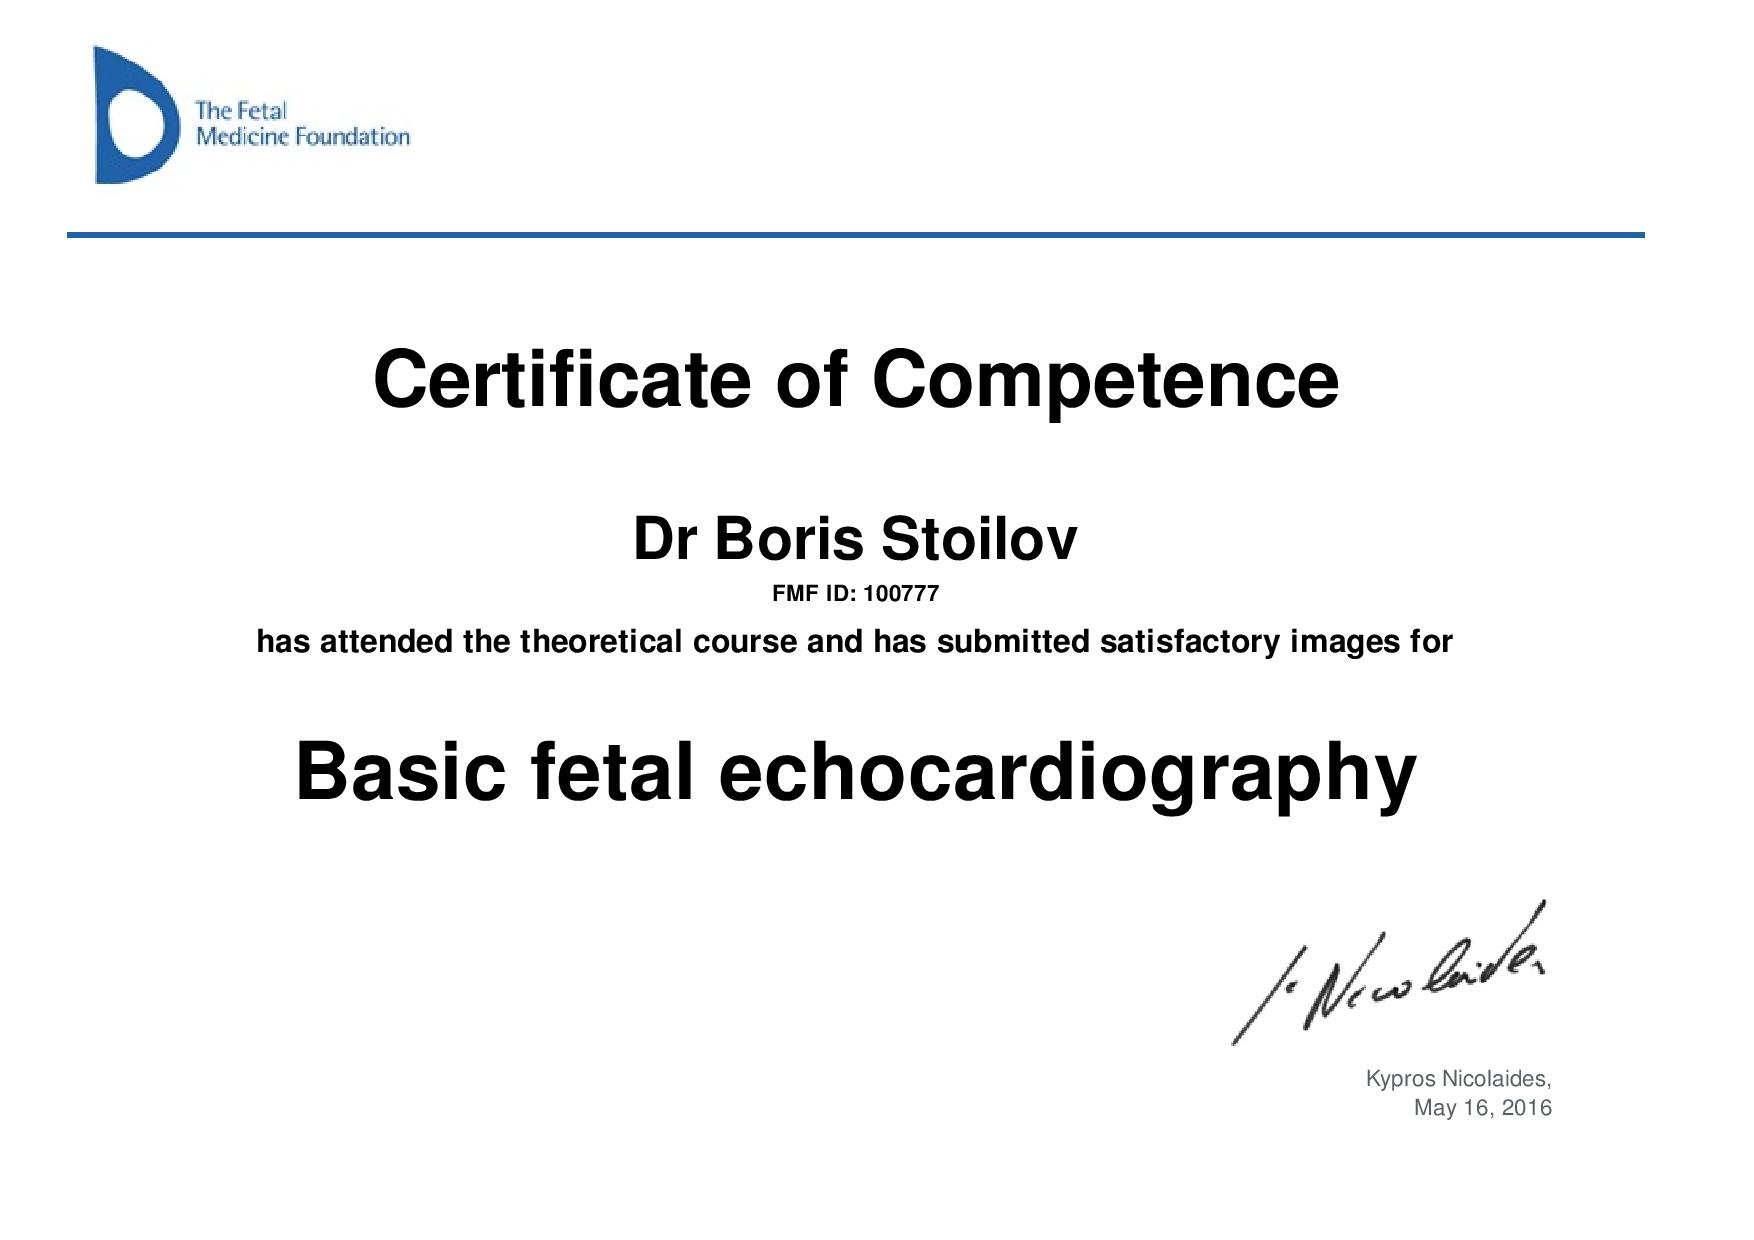 Certificate of competence in FETAL ECHOCARDIOGRAPHY